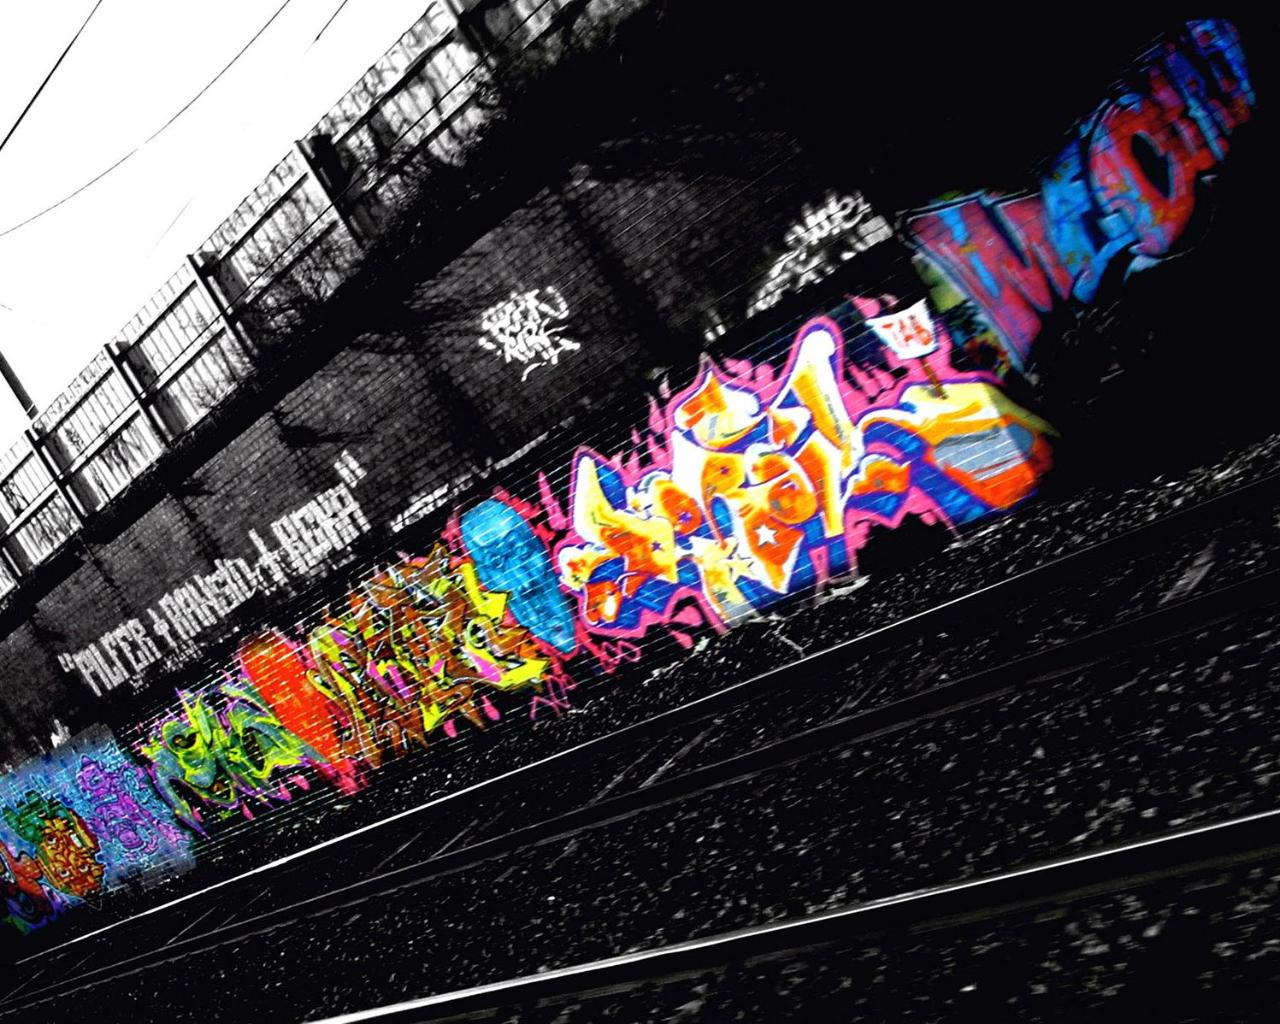 urban graffiti art wallpaper - photo #2